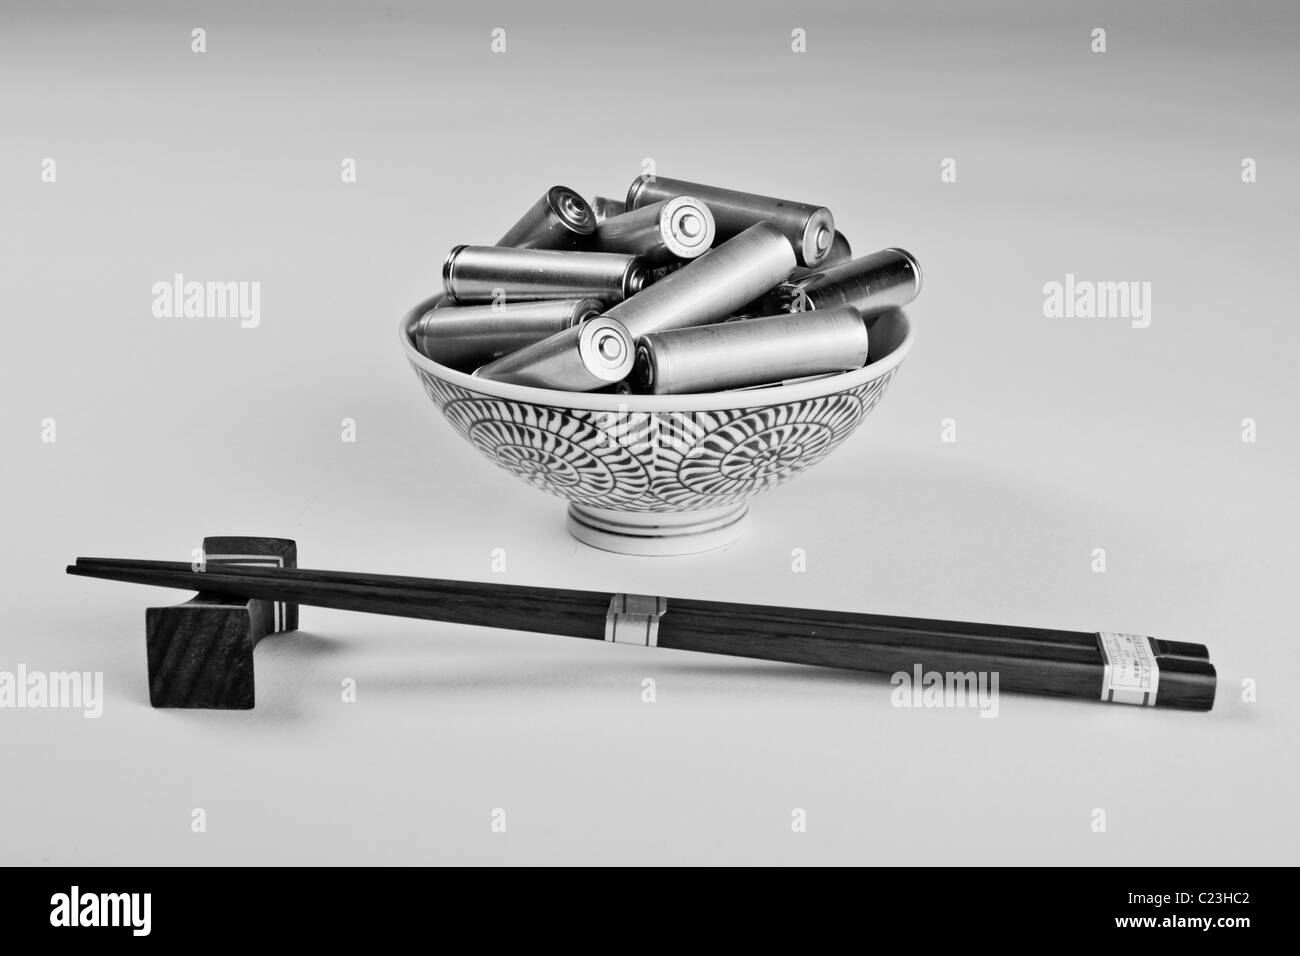 A bowl containing batteries and chopsticks. The photo is a metaphor for consumerism. - Stock Image